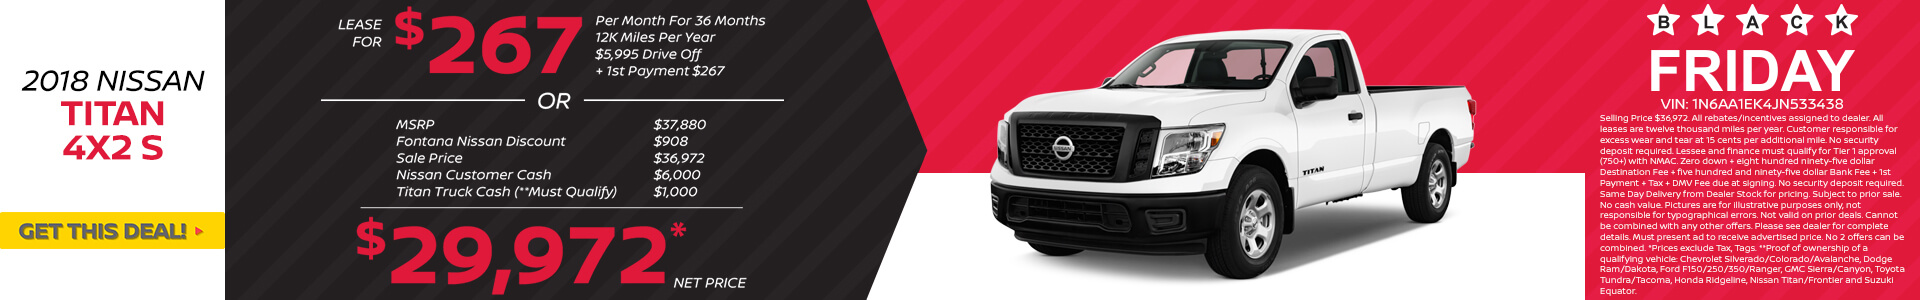 Nissan Titan $267 Lease $29,972 Purchase